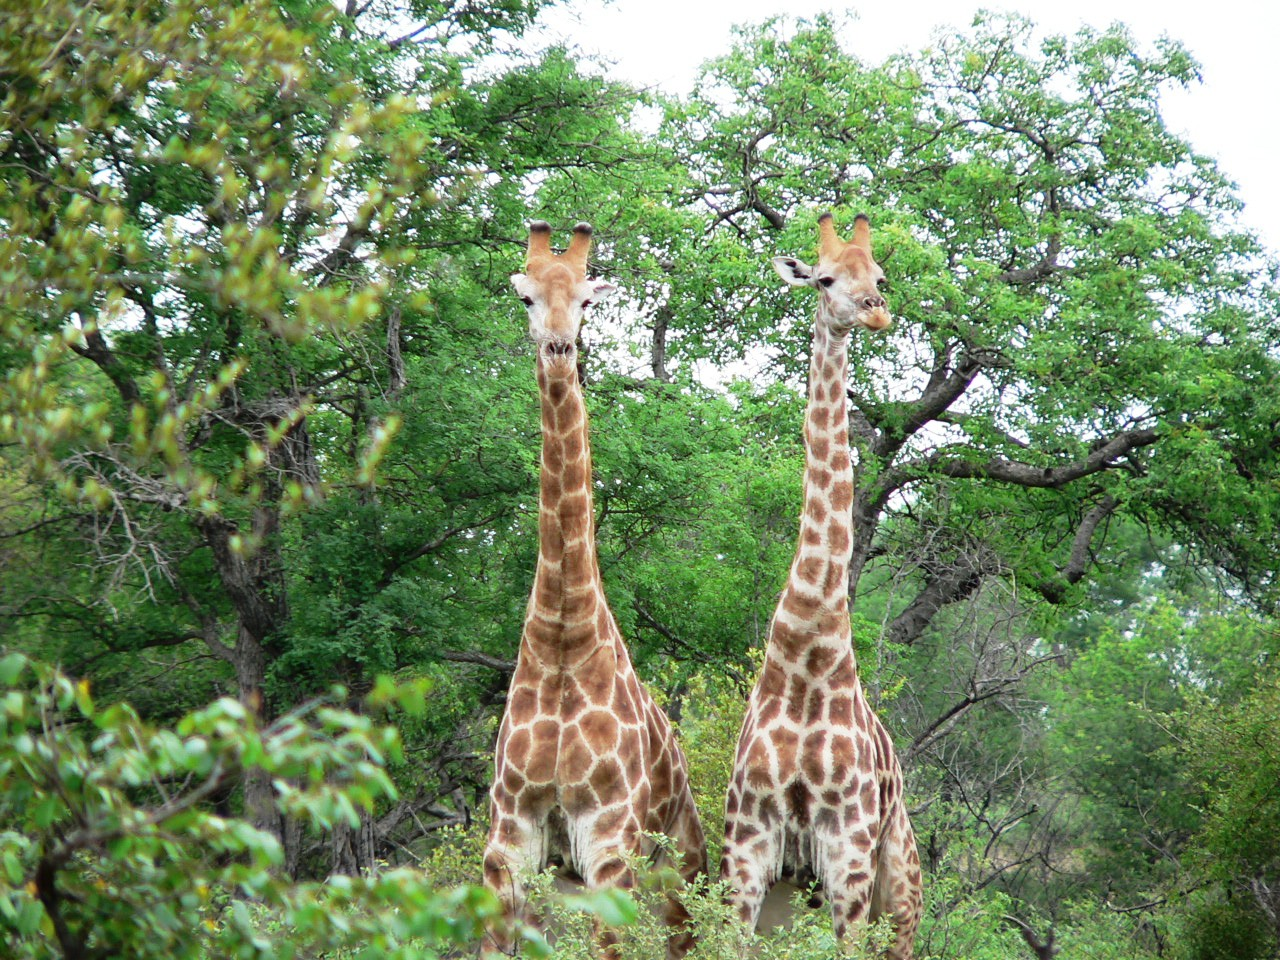 Giraffes in Kruger National Park, South Africa